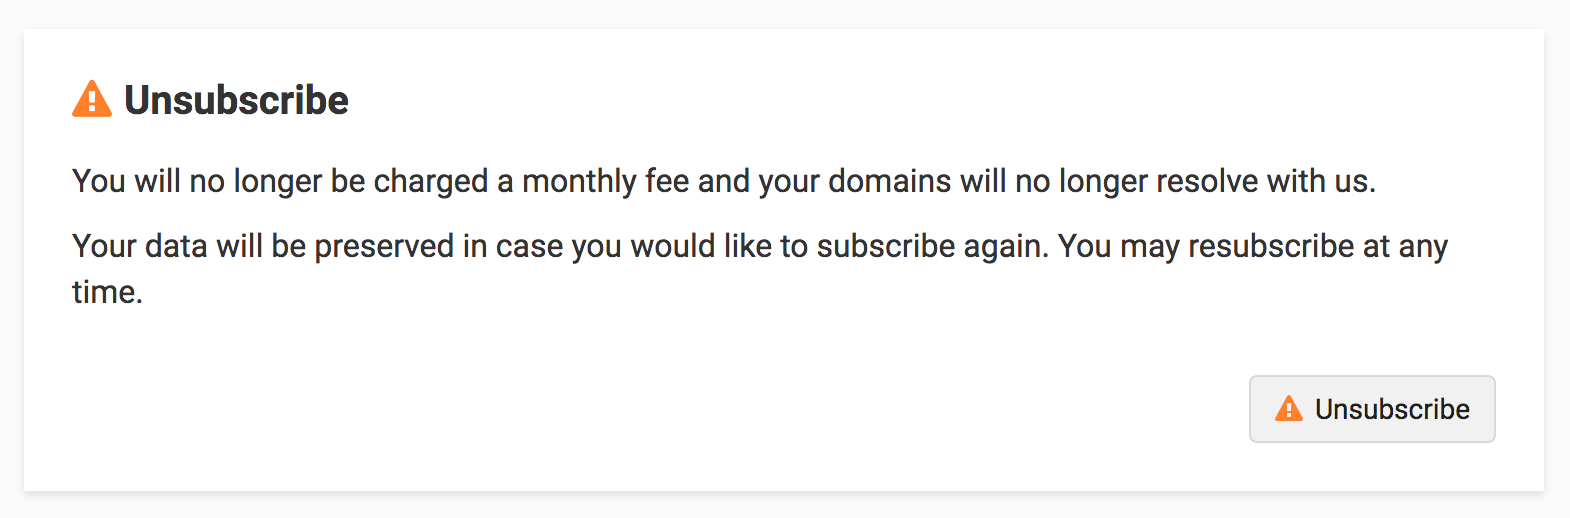 Unsubscribe section